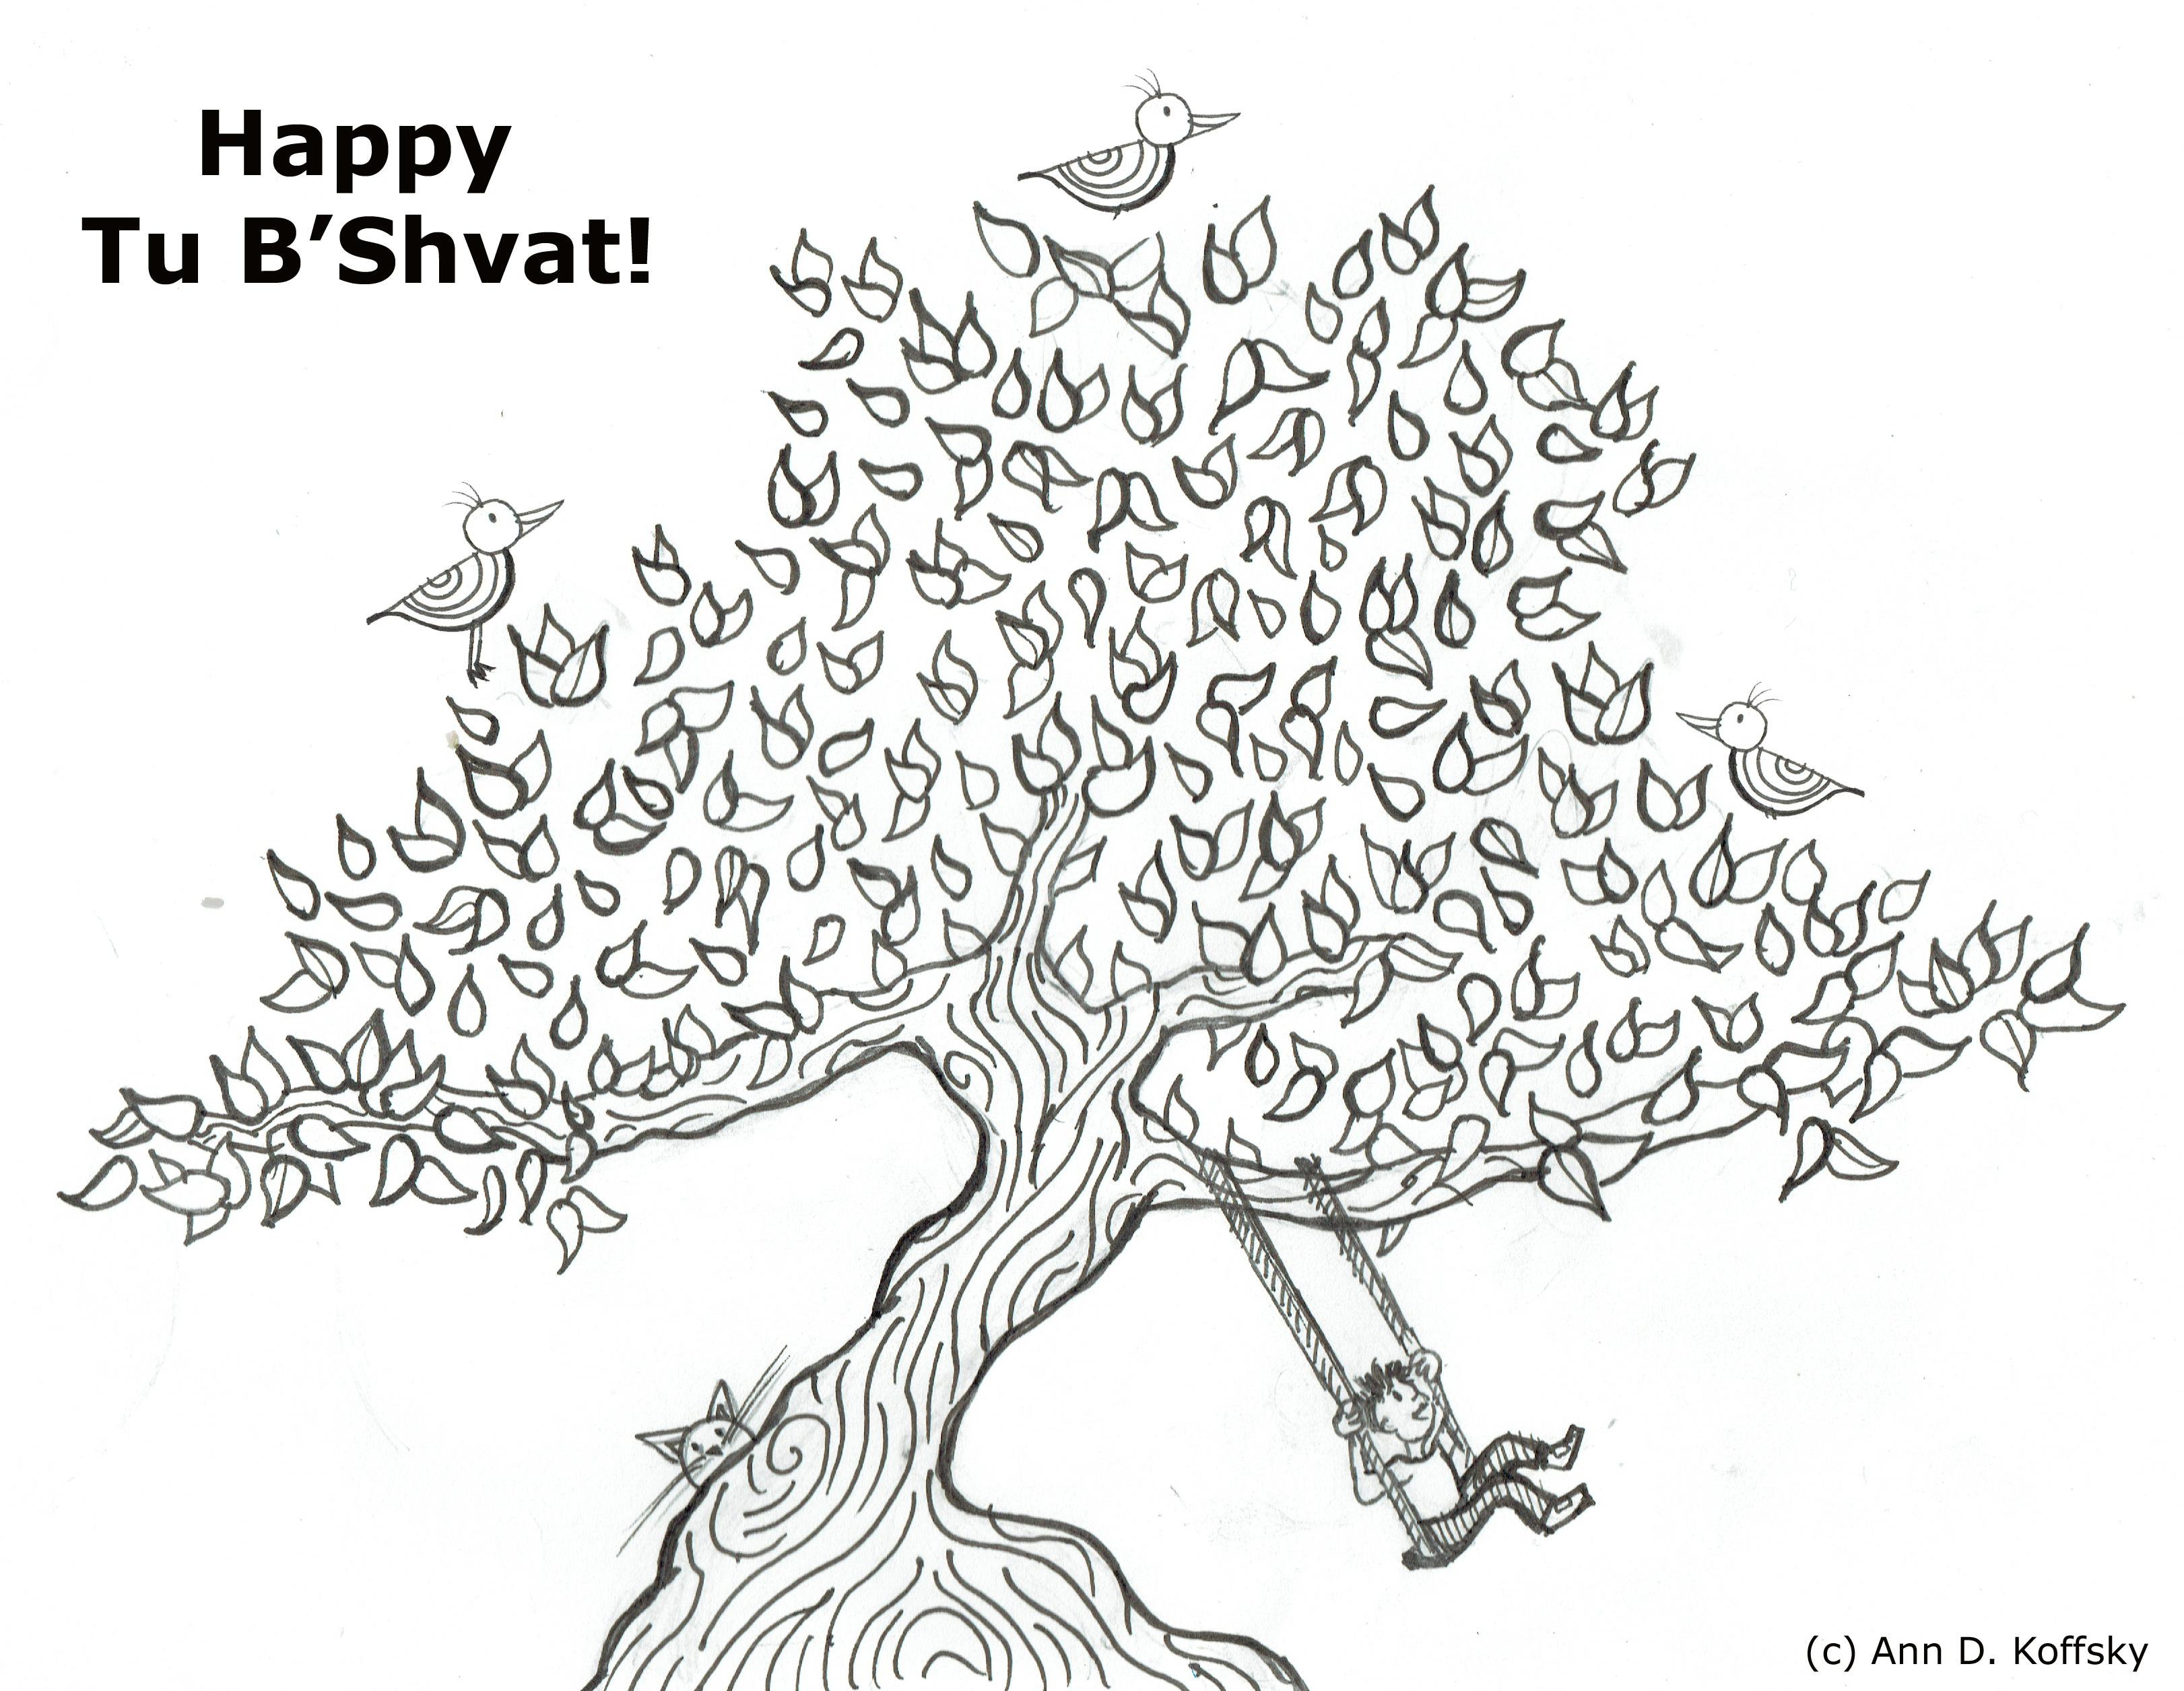 tu b shvat coloring pages - photo#14